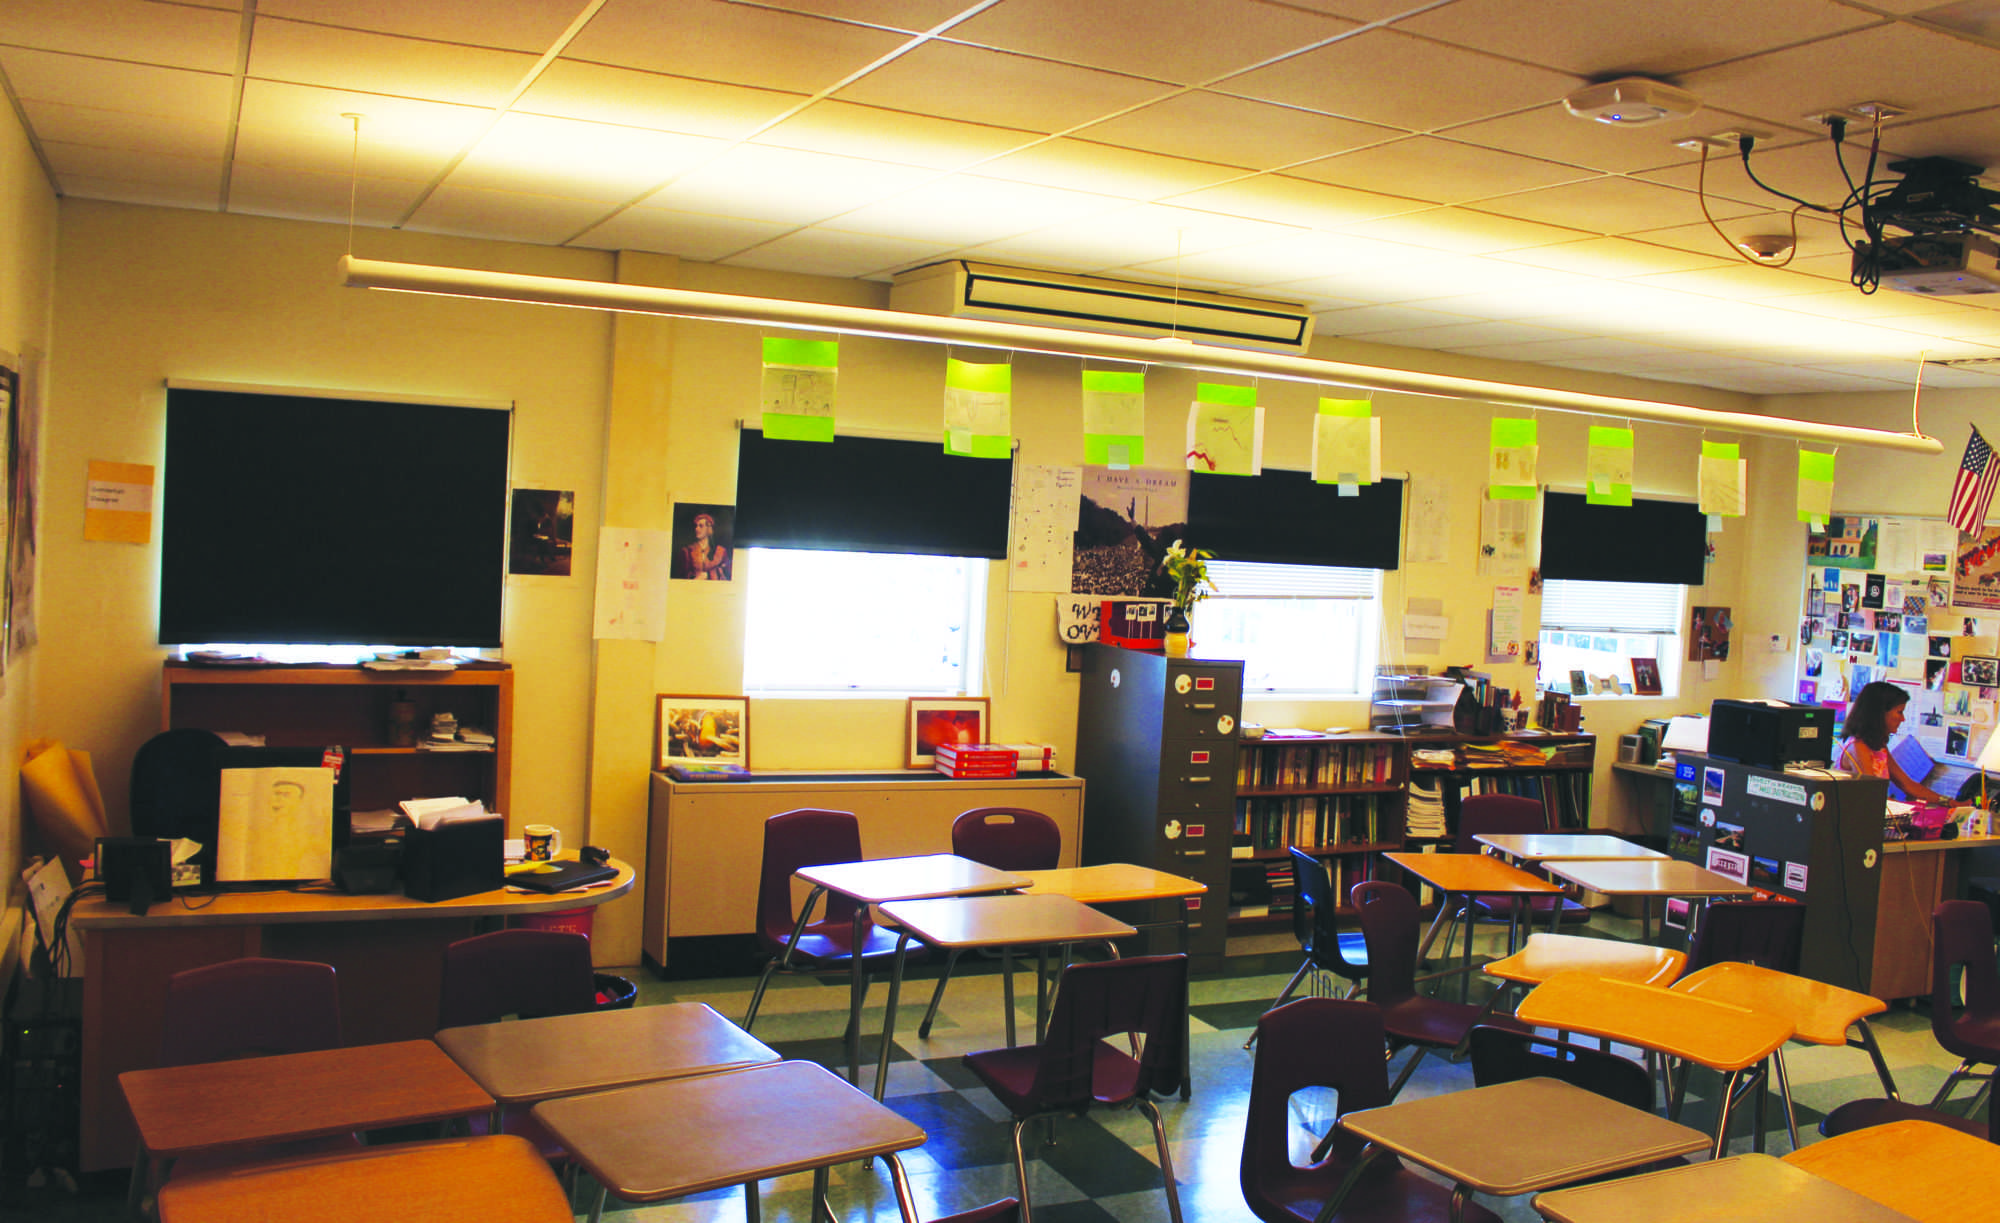 Increased classroom sharing has its pros and cons